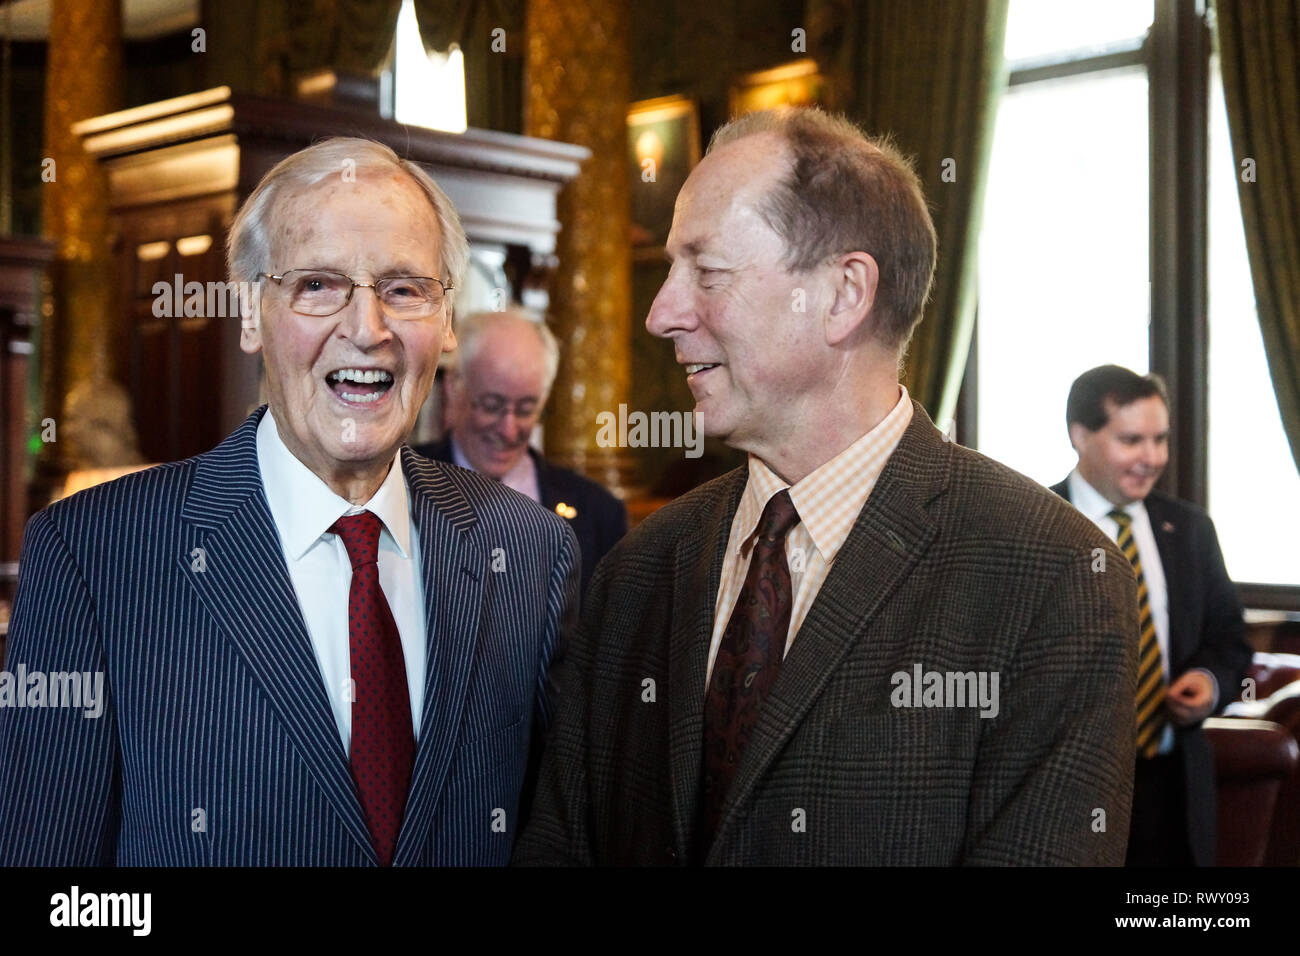 London, UK. 07th Mar, 2019. Nicholas Parsons, Rupert Morriss.Nicholas Parsons, actor and host of long-running Just a Minute, Peter Tatchell, human rights activist, and Valerie Brandes, founder and publisher of Jacaranda Books accept Honorary Membership of the National Liberal Club at a luncheon hosted by NLC Chairman, Rupert Morriss. Credit: Peter Hogan/Alamy Live News - Stock Image